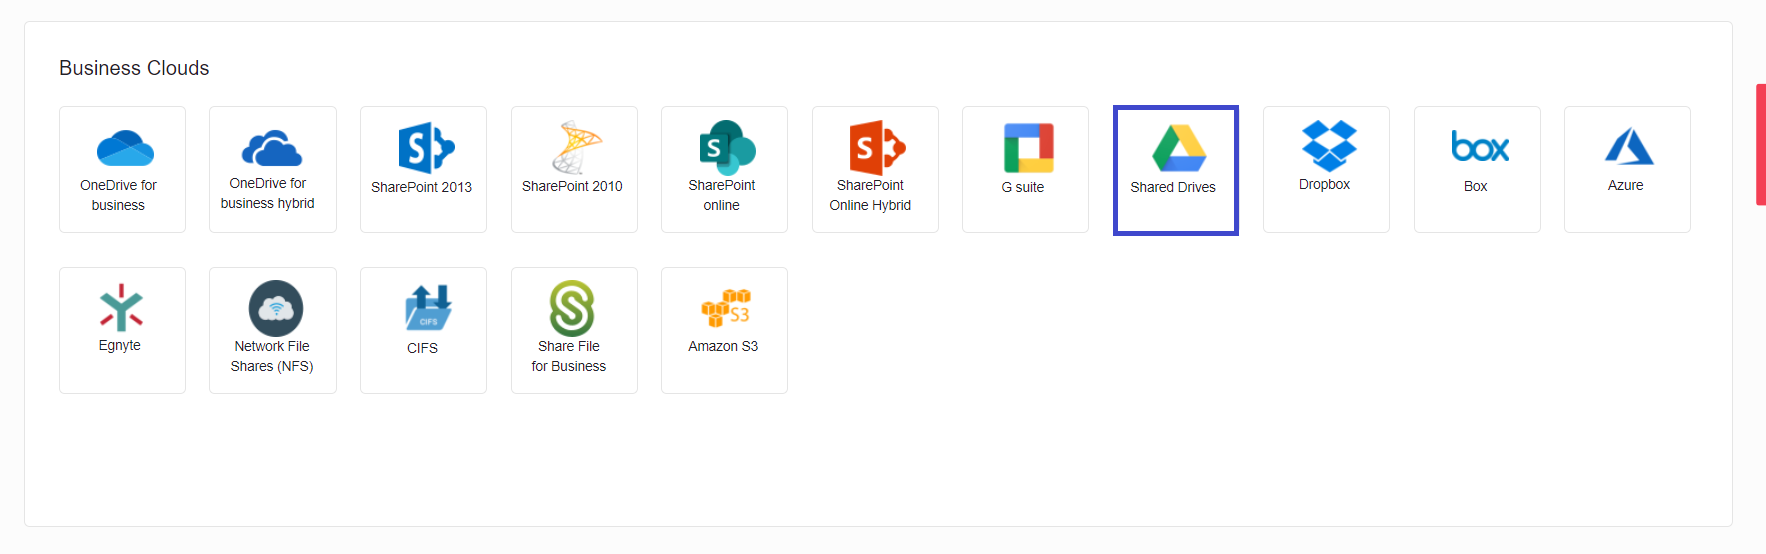 Locate Google Shared Drives